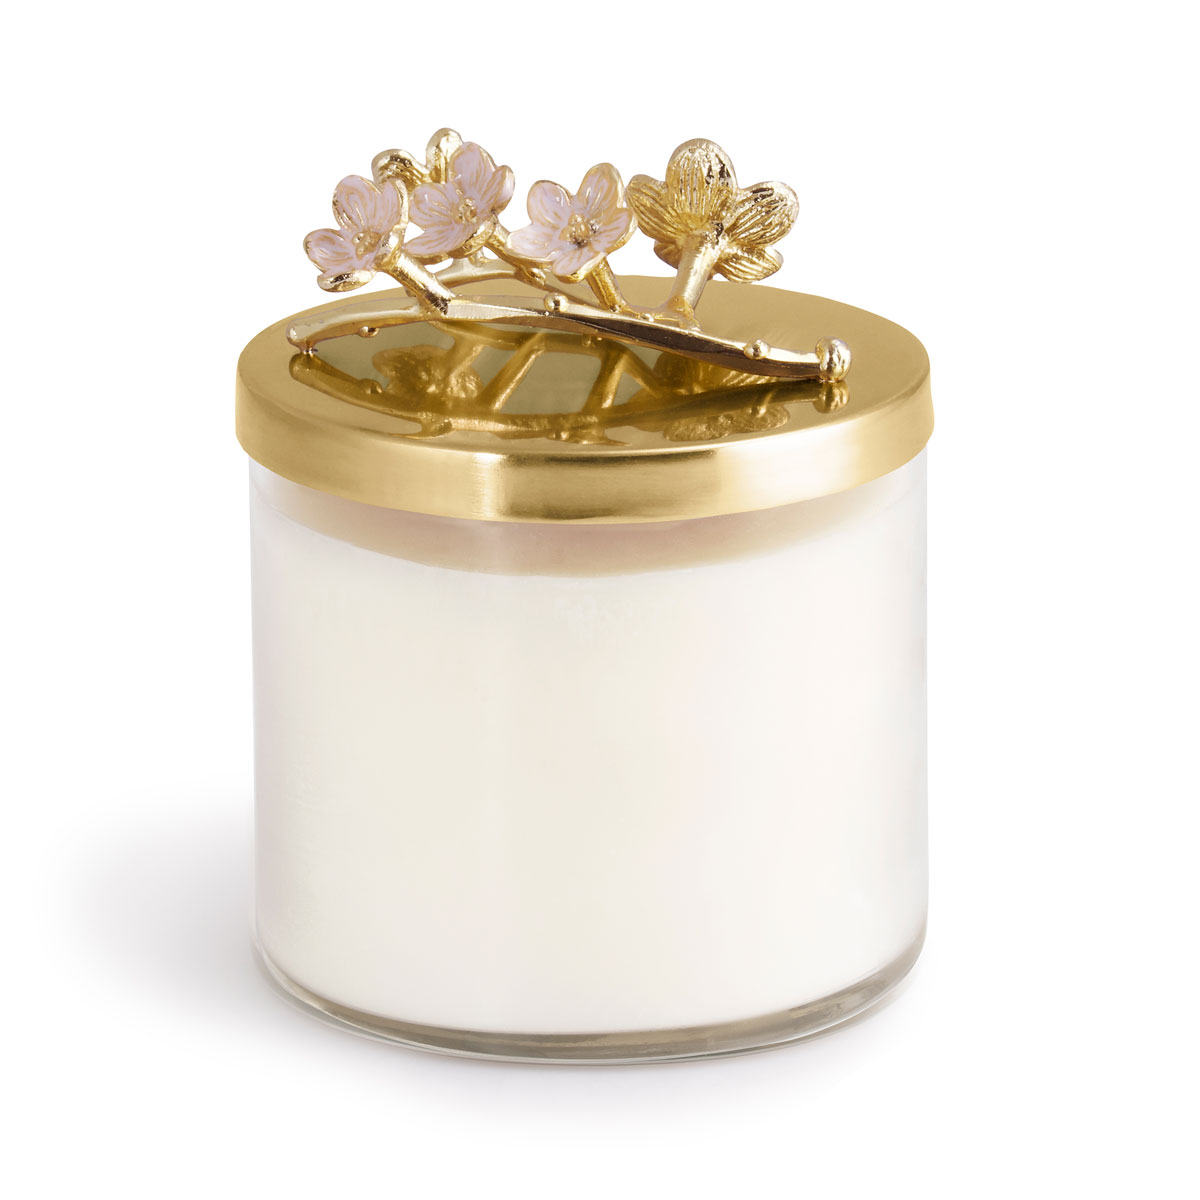 Michael Aram Cherry Blossom Candle, Single